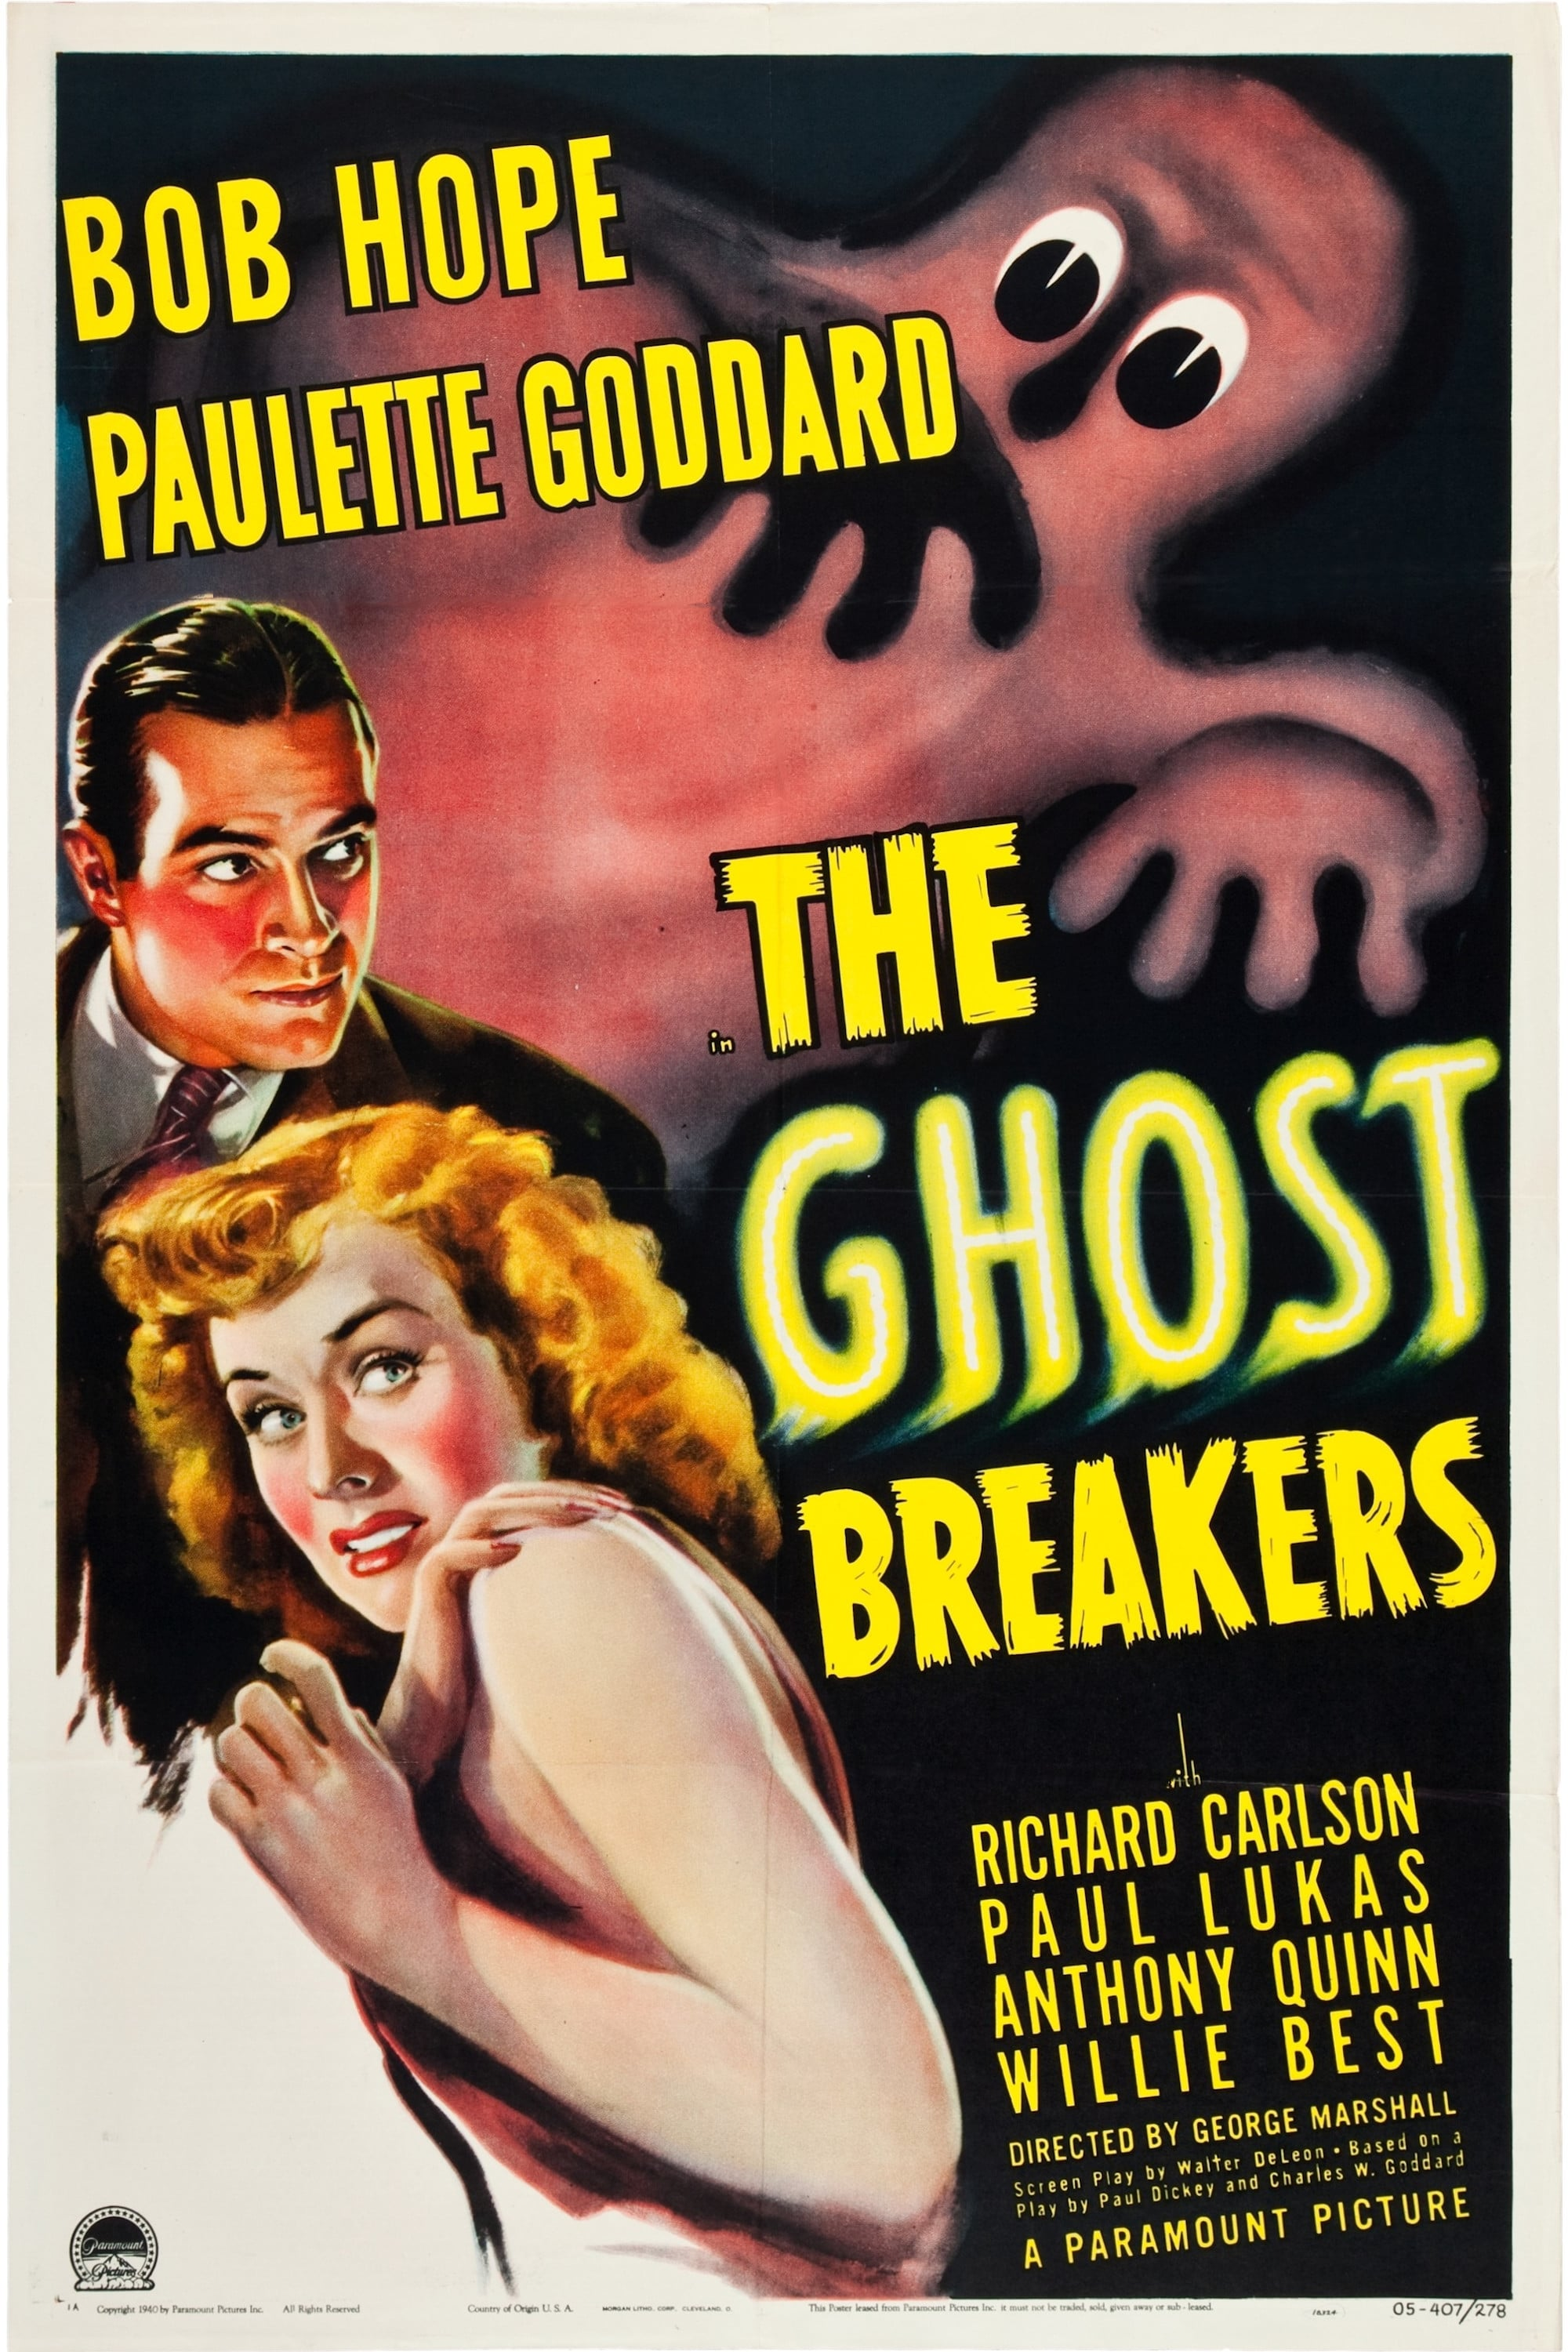 The Ghost Breakers